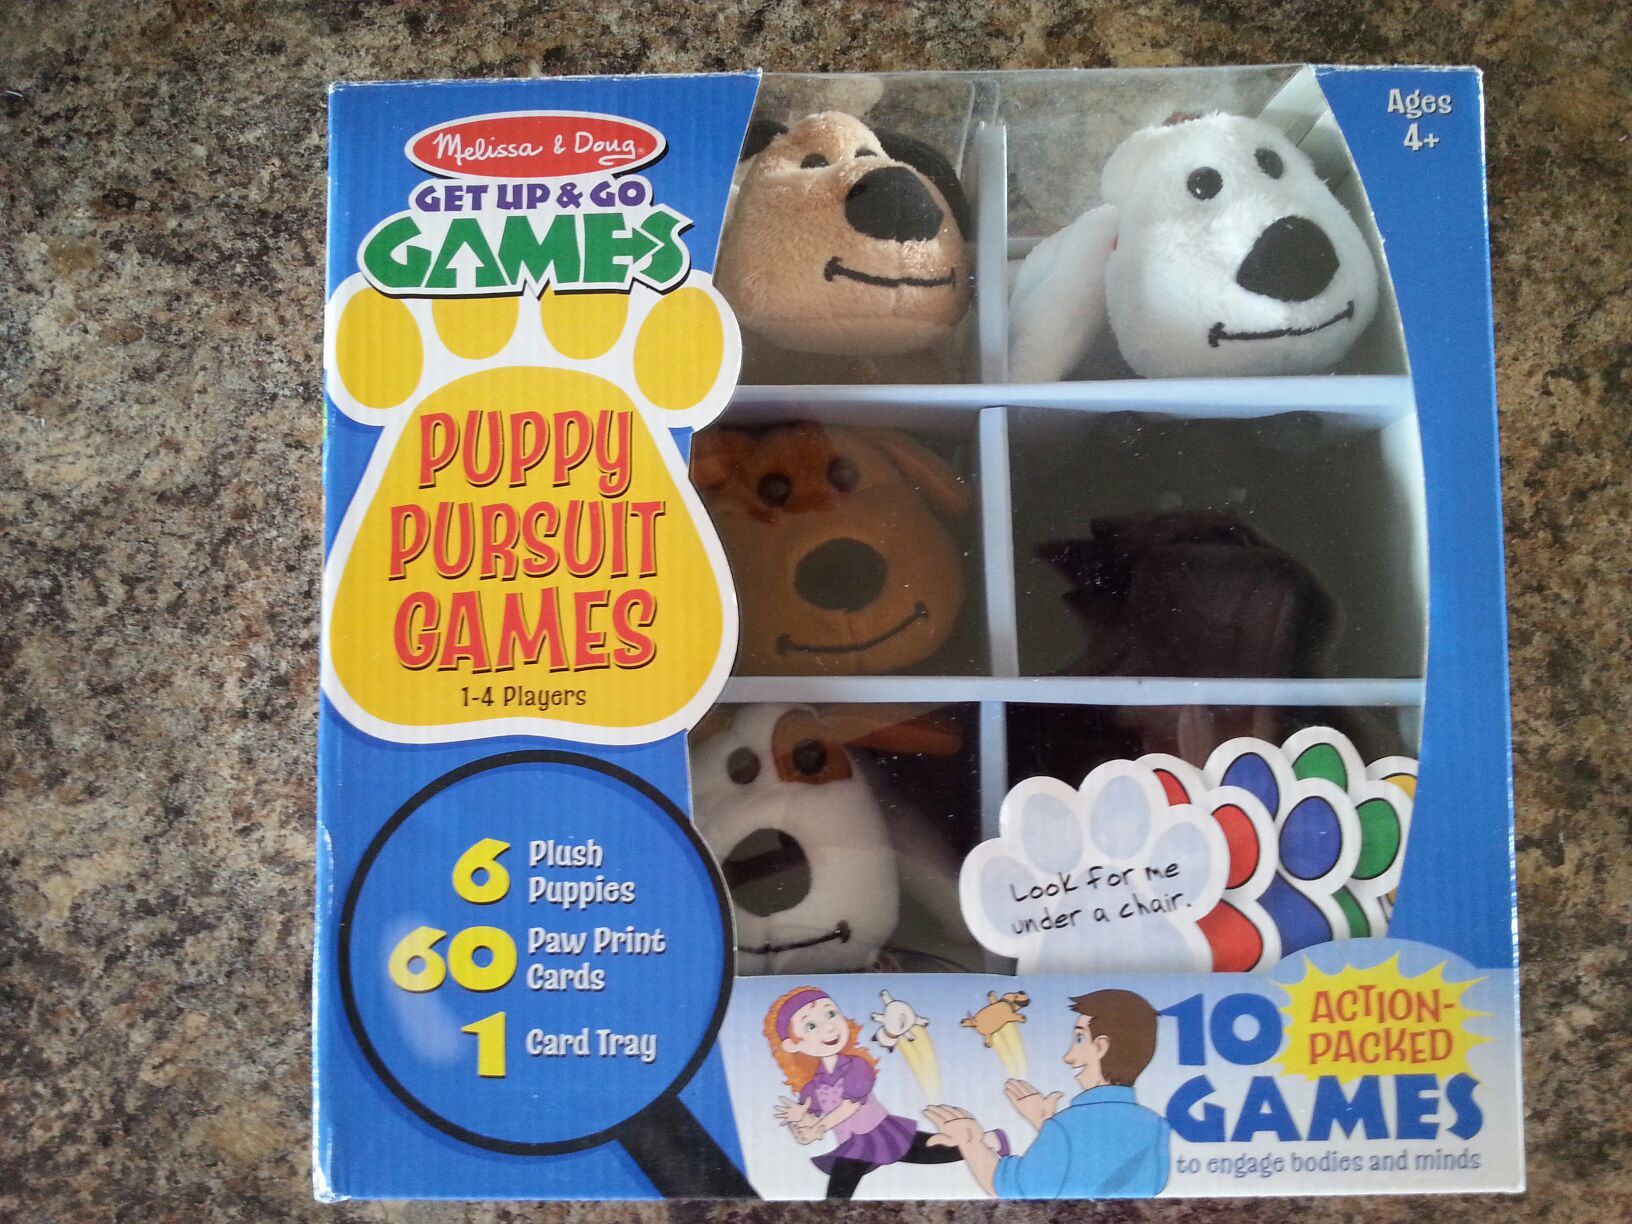 Puppy Pursuit Board Game - Melissa and Doug front image (front cover)